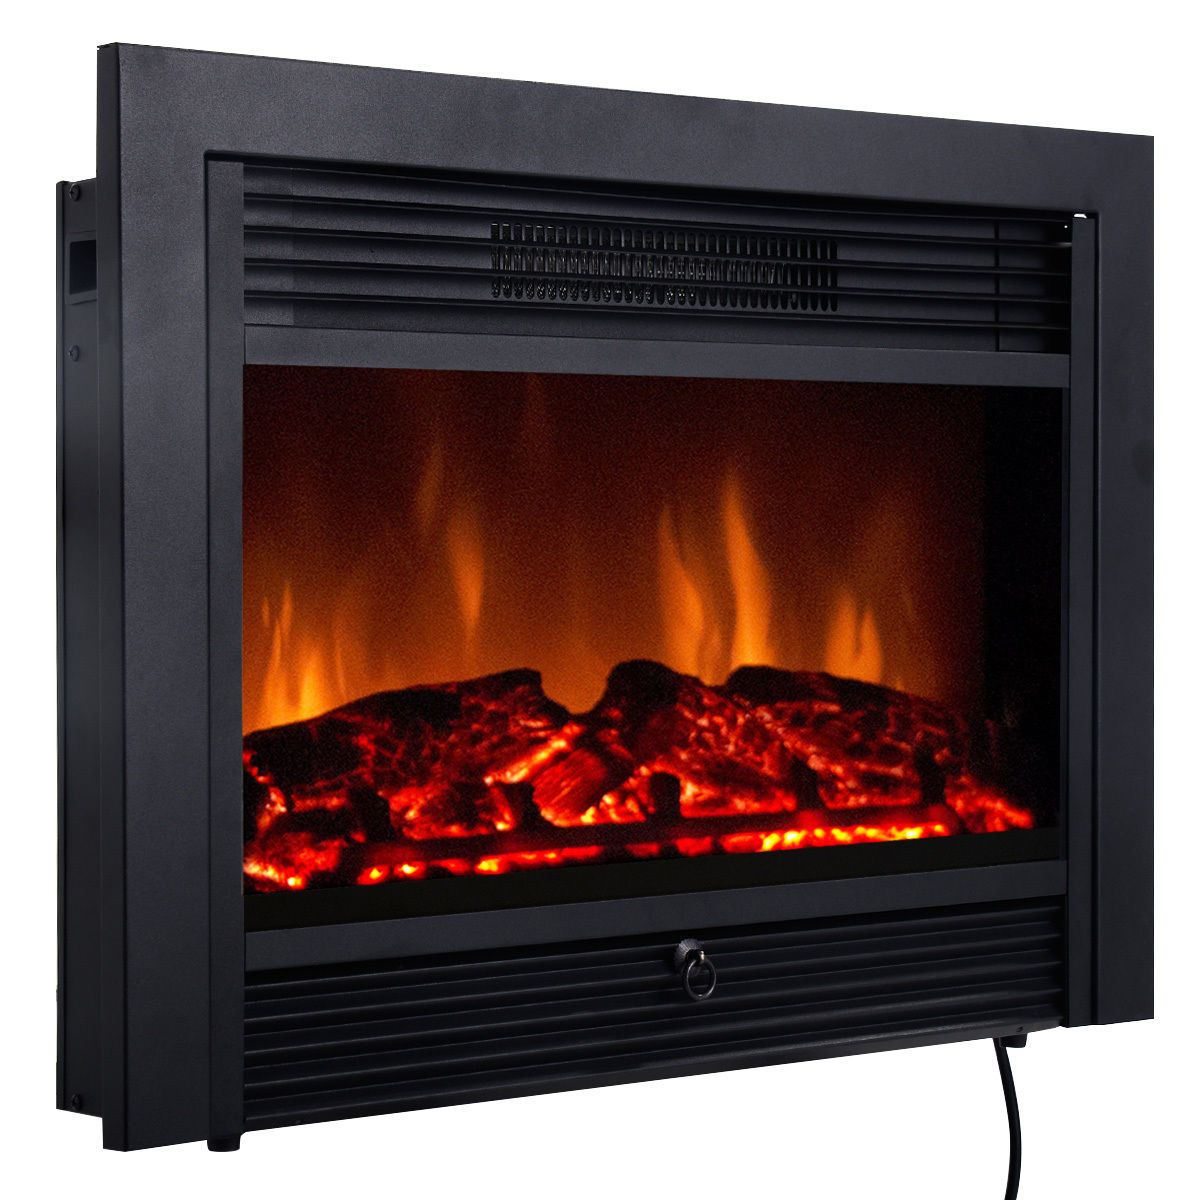 Walmart Black Electric Fireplace 23